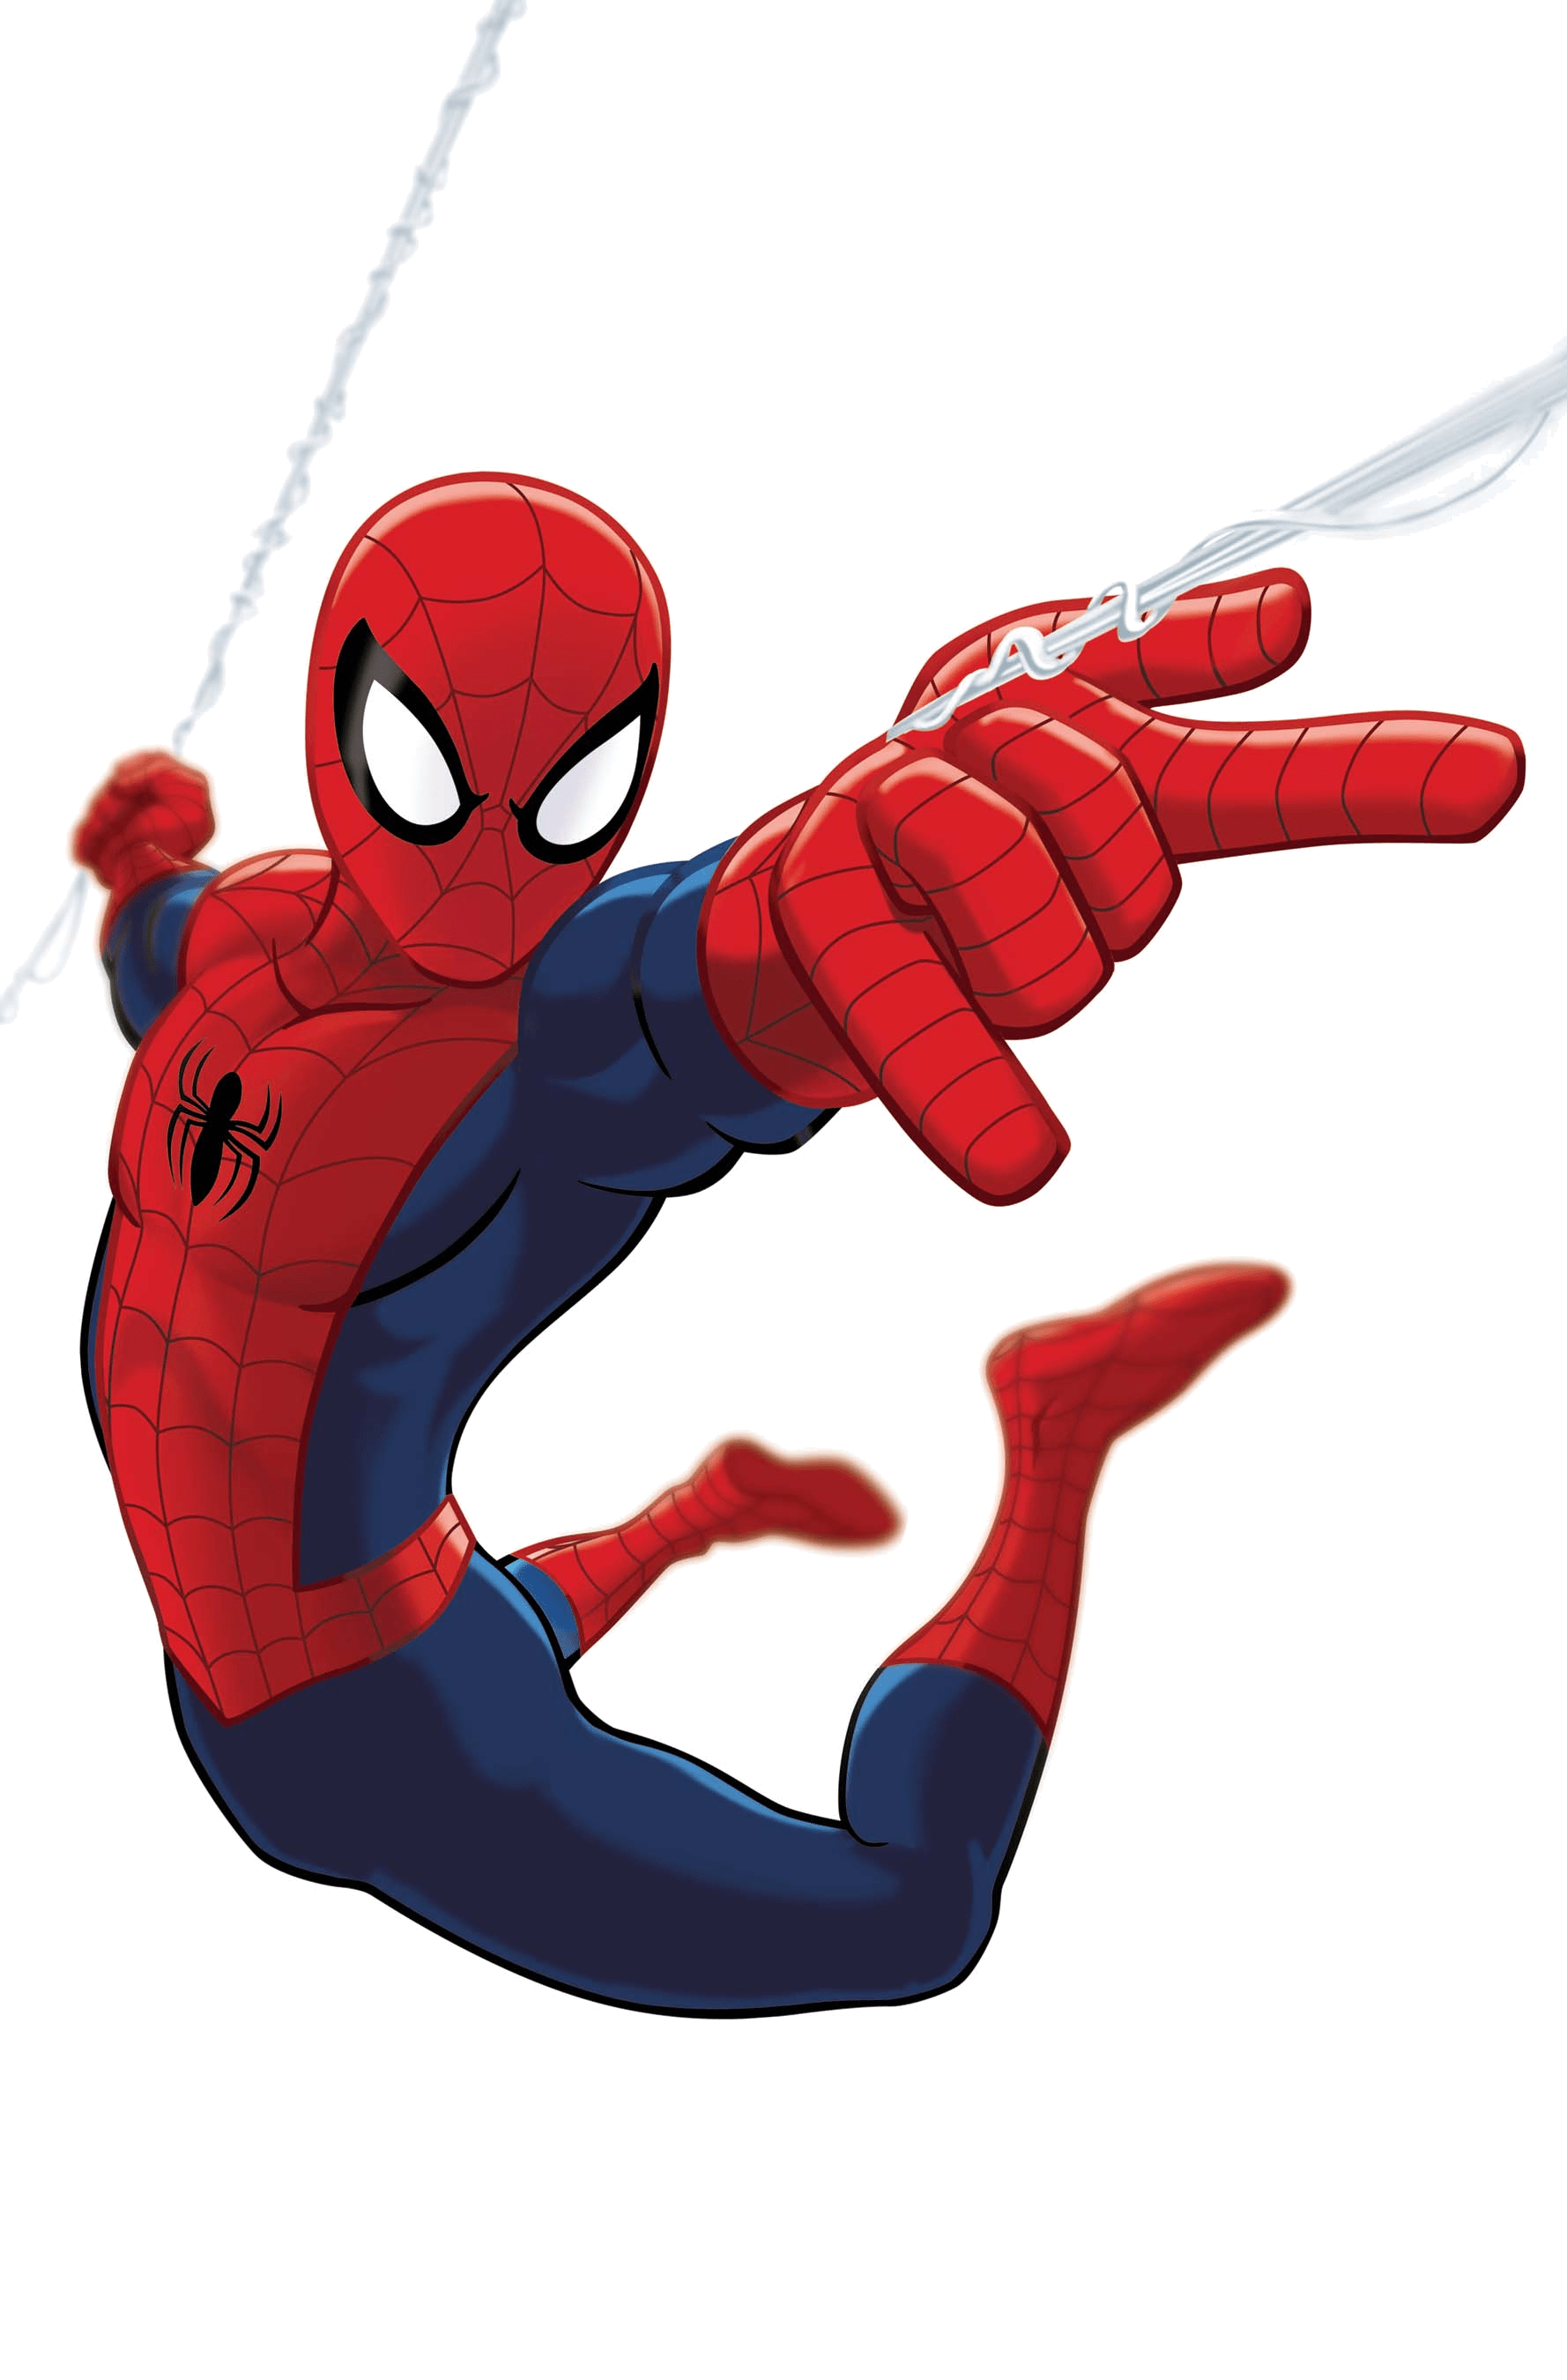 Spiderman PNG - 111025